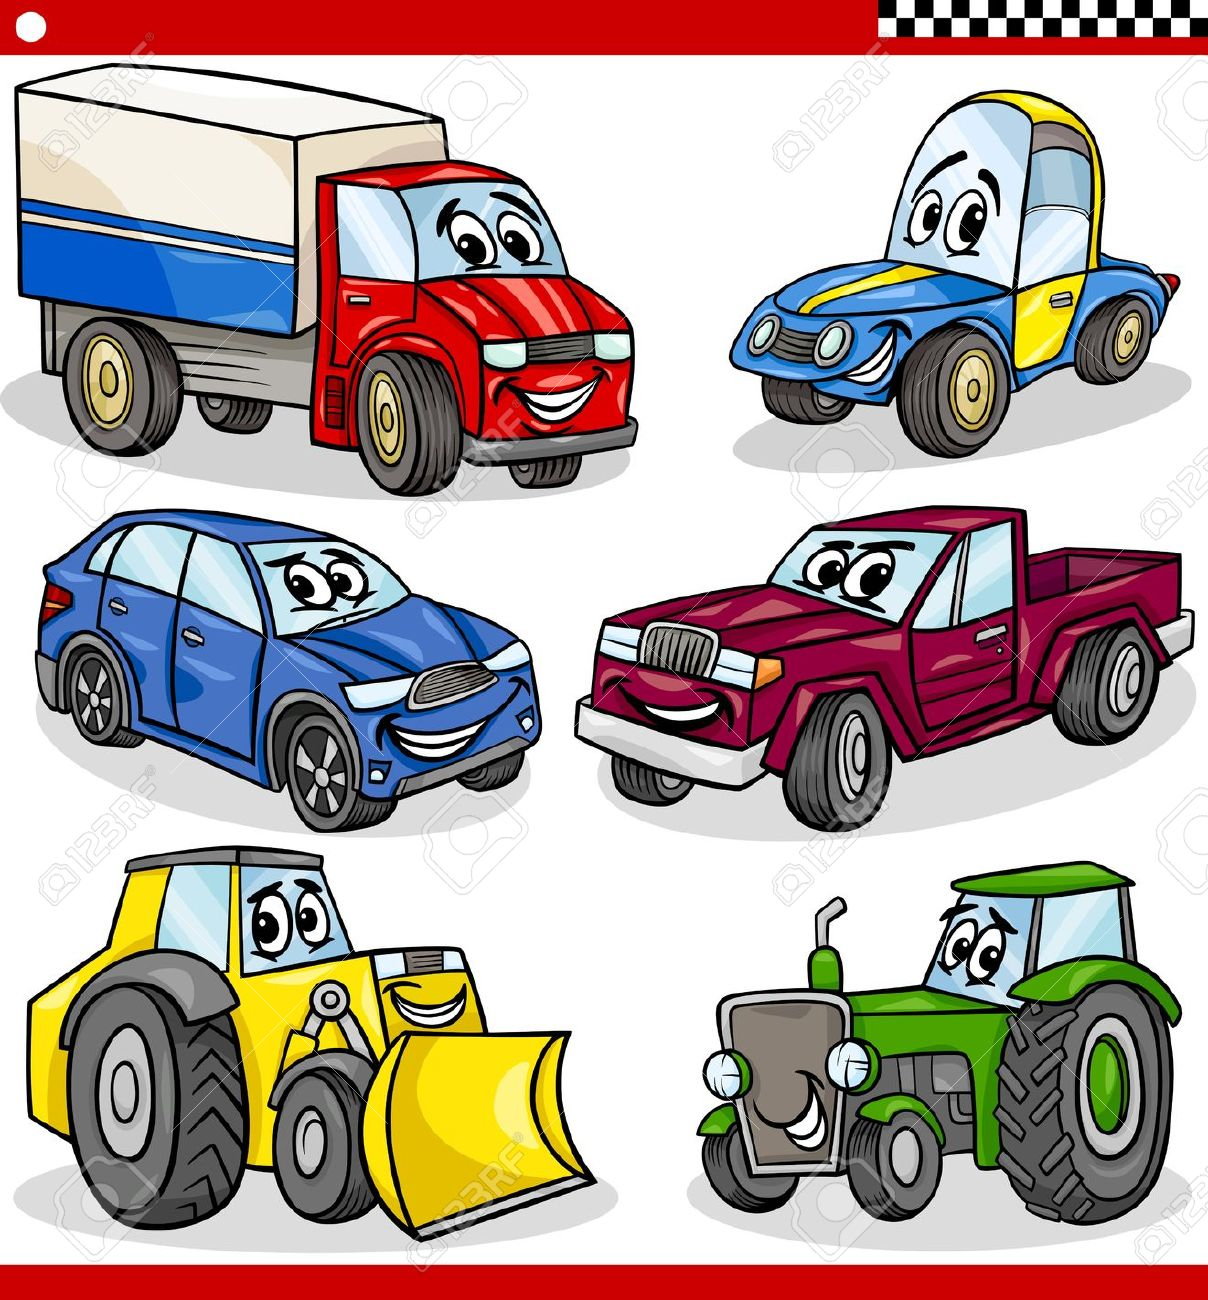 Cartoon Illustration Of Cars And Trucks Vehicles And Machines.